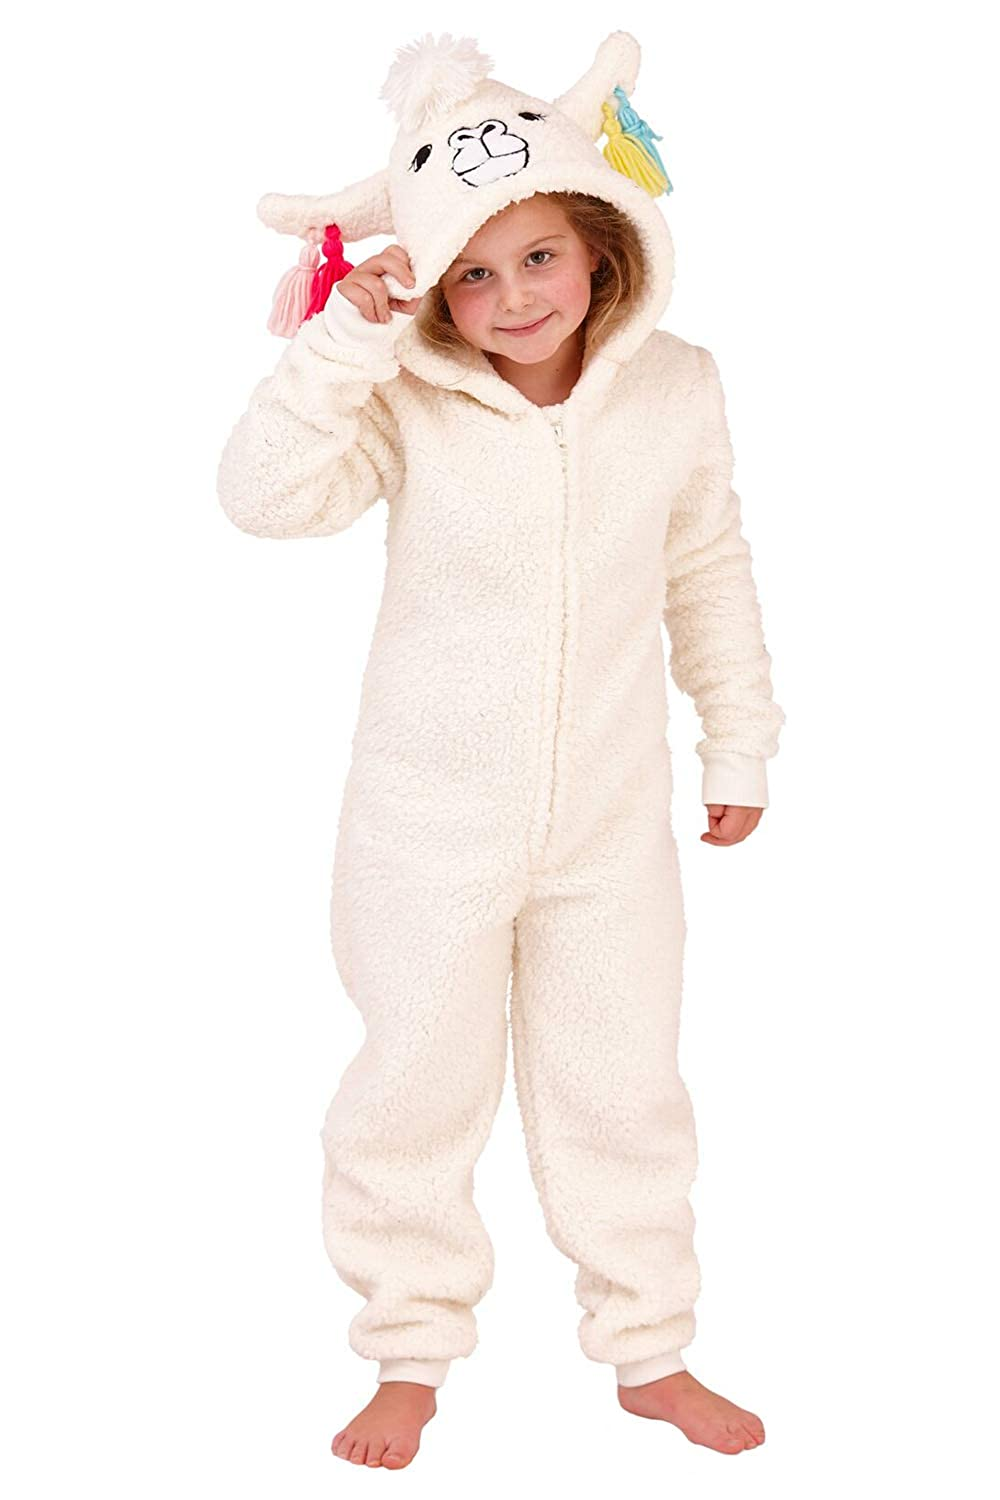 Nifty Kids Novelty Animal All In One Fleece Luxury Sleepsuit